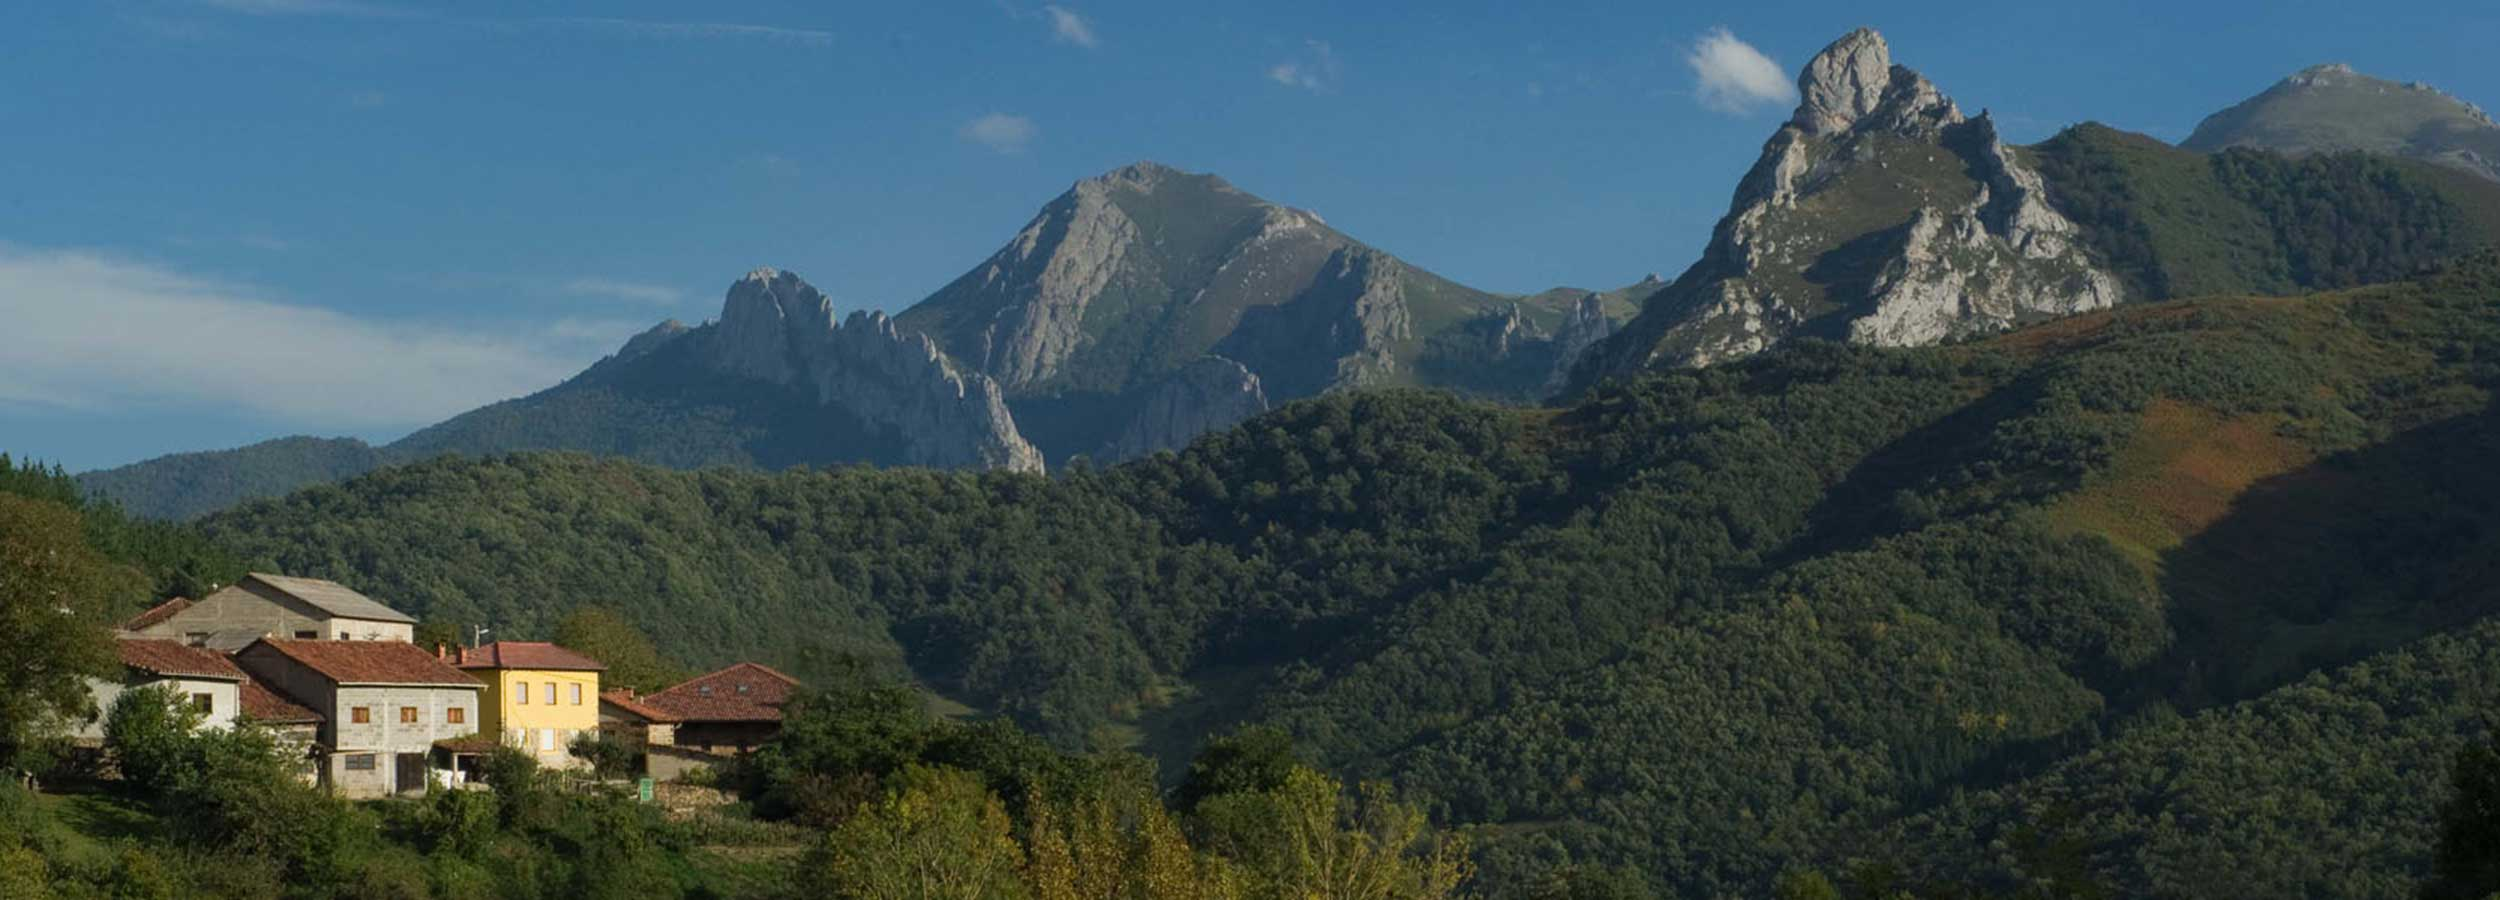 holiday-photography-course-picos-de-europa